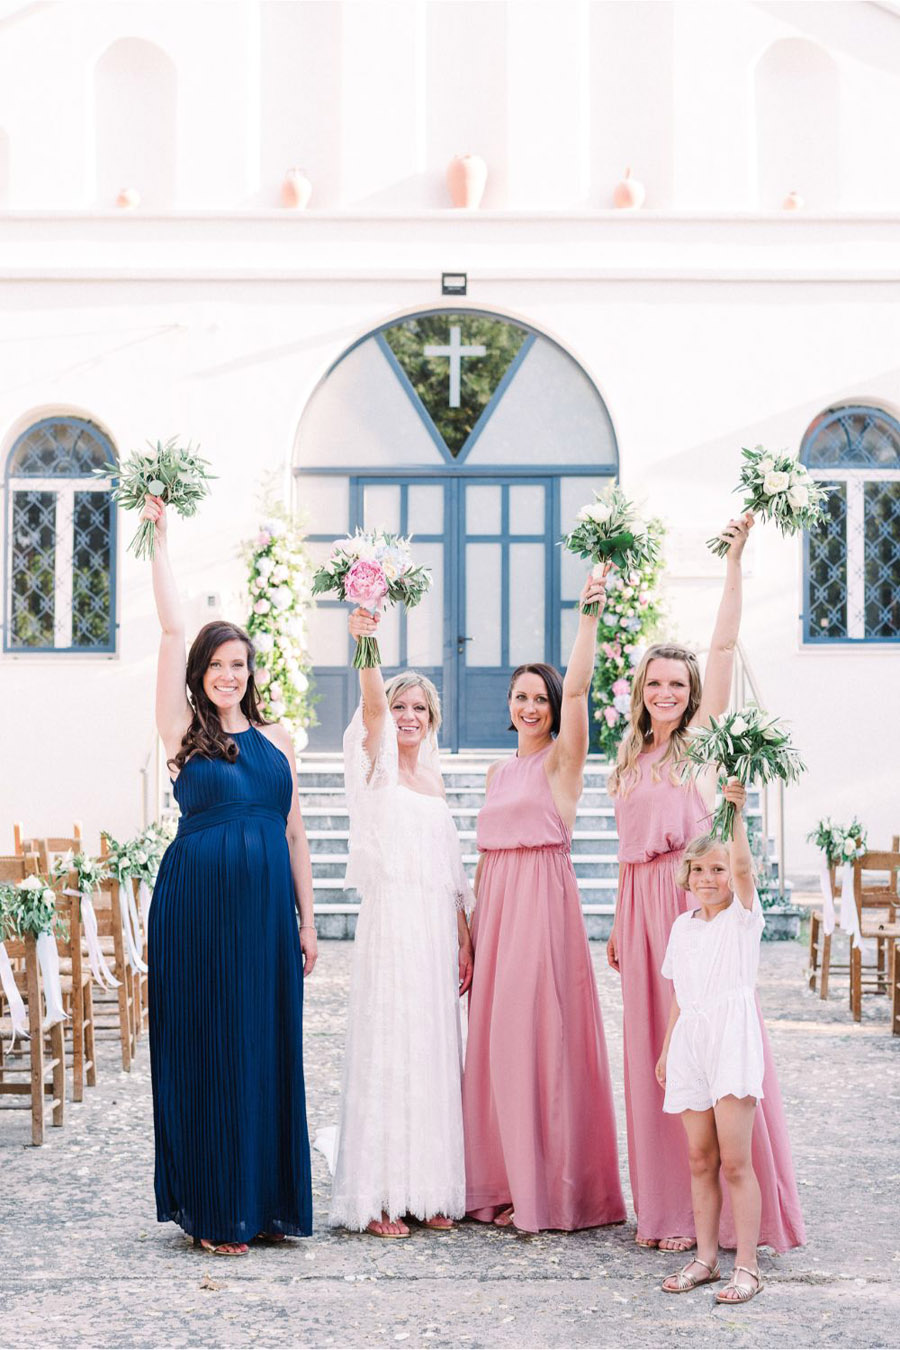 destination wedding in Crete with Crete For Love wedding planners (9)